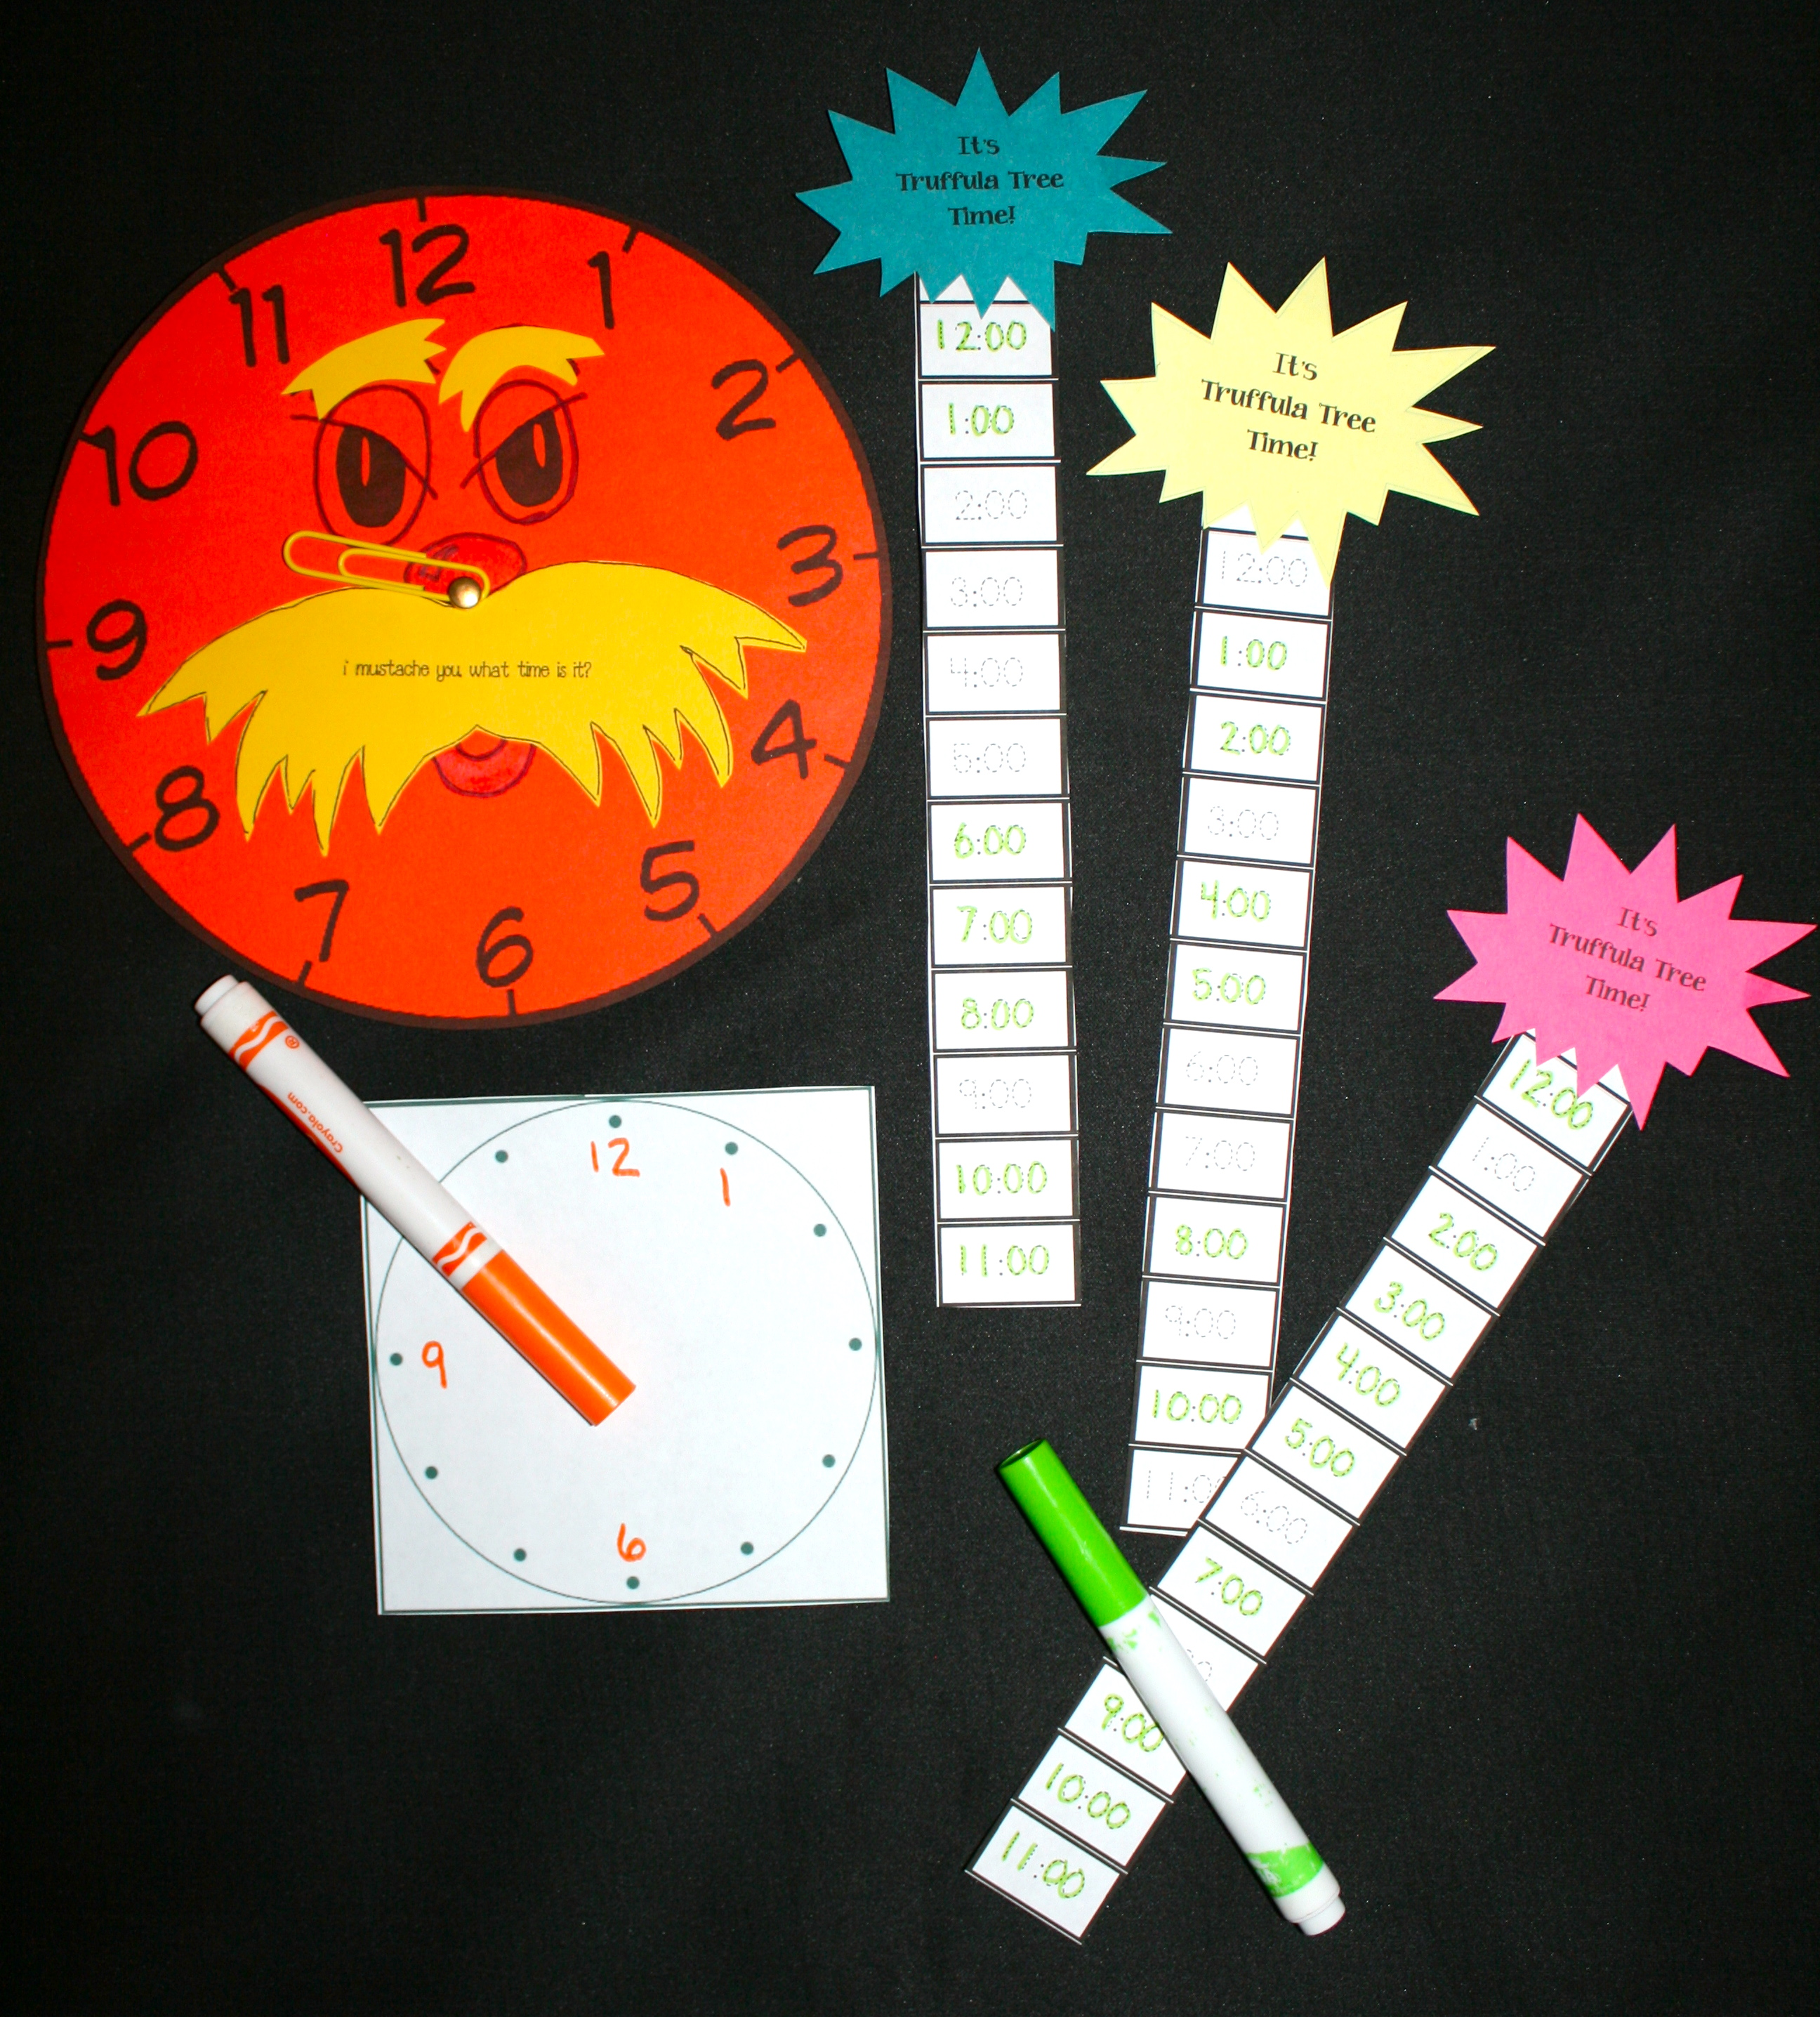 seuss activities, seuss lessons, lorax activities, lorax lessons, writing prompts for seuss, writing prompts for lorax, writing prompts for march,  , lorax mustache template, spring bulletin boards, march bulletin boards, seuss bulletin boards, truffula pencils, truffula trees, how to make a truffula tree, shape activities, shape bulletin boards, telling time activities, analog time, digital time, telling time games, 1.MD.3 Lorax crafts, mustache activities